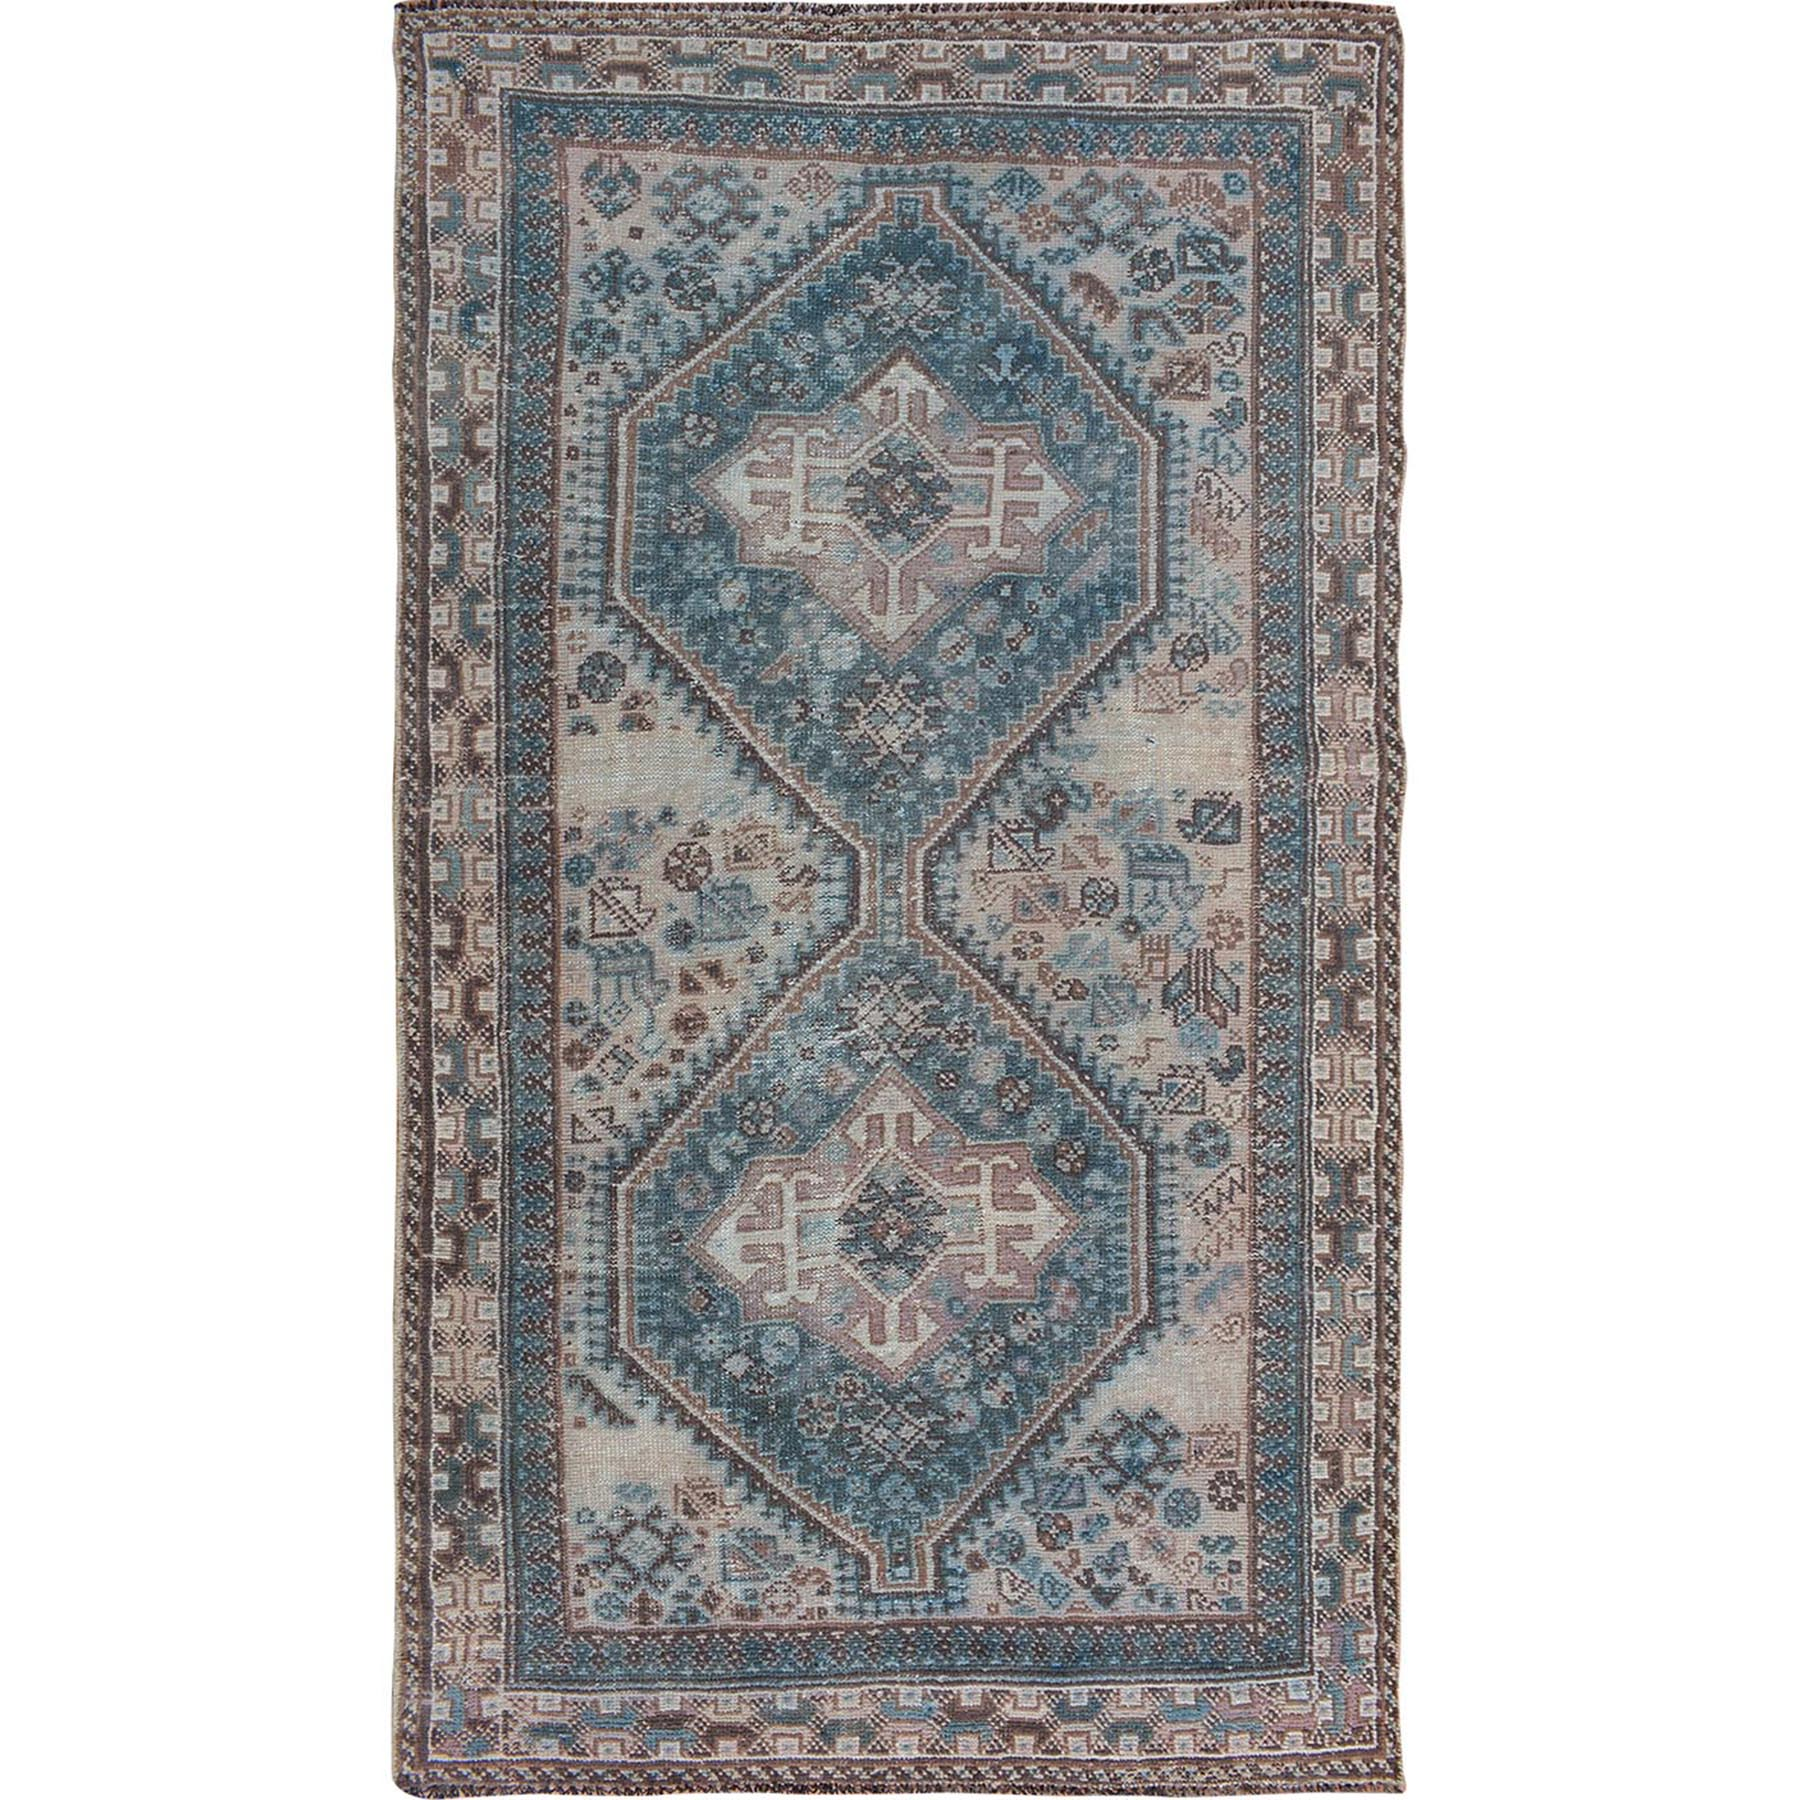 """4'4""""X7' Beige Worn Down Vintage Persian Shiraz Pure Wool Hand Knotted Oriental Rug moae7b67"""